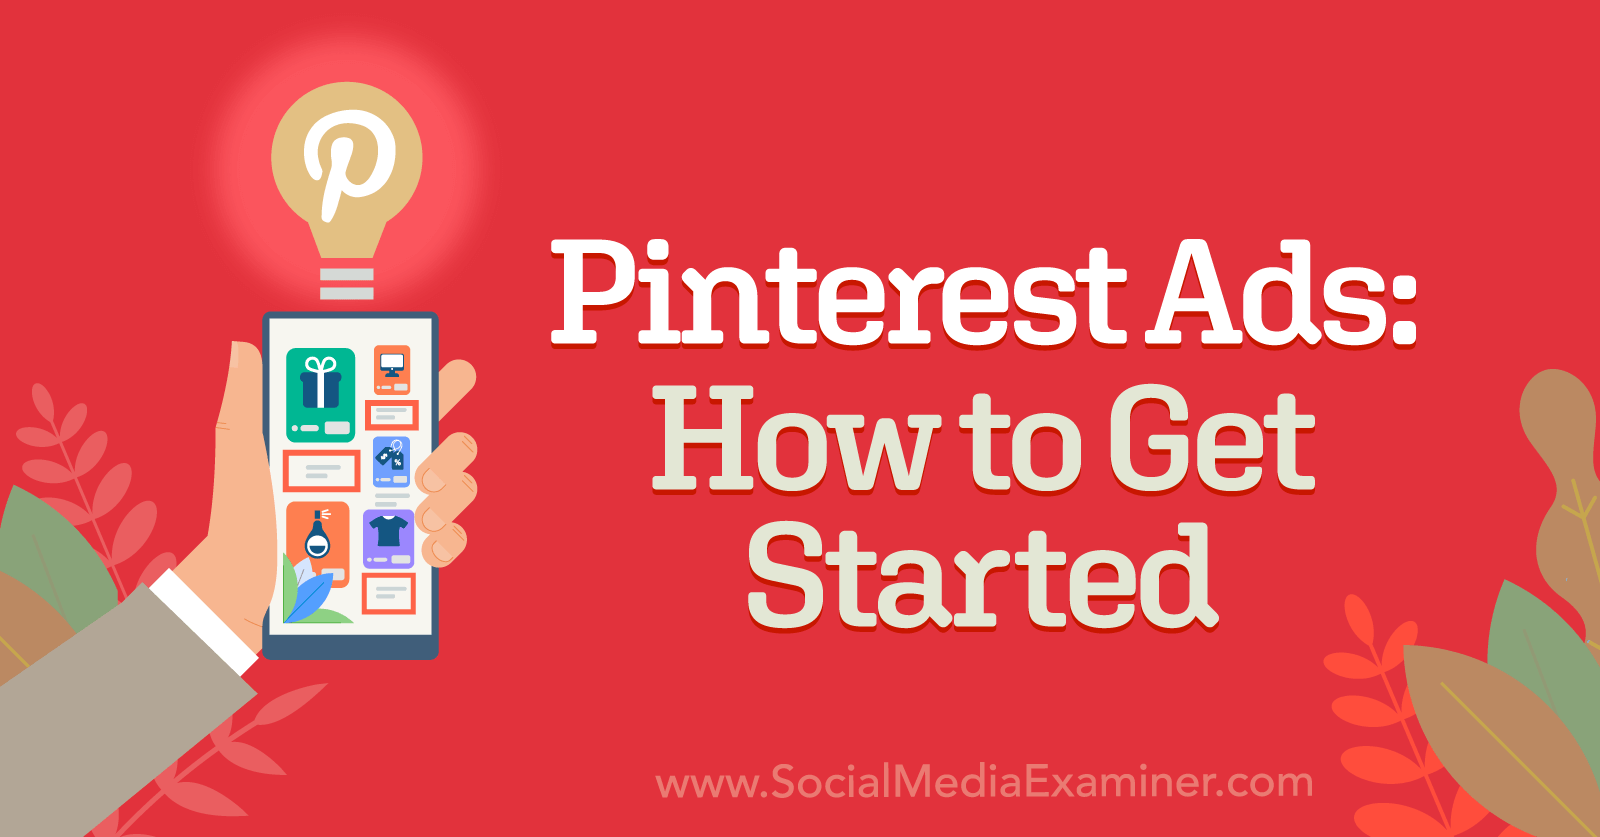 Pinterest Ads: How to Get Started featuring insights from Lindsay Shearer on the Social Media Marketing Podcast.